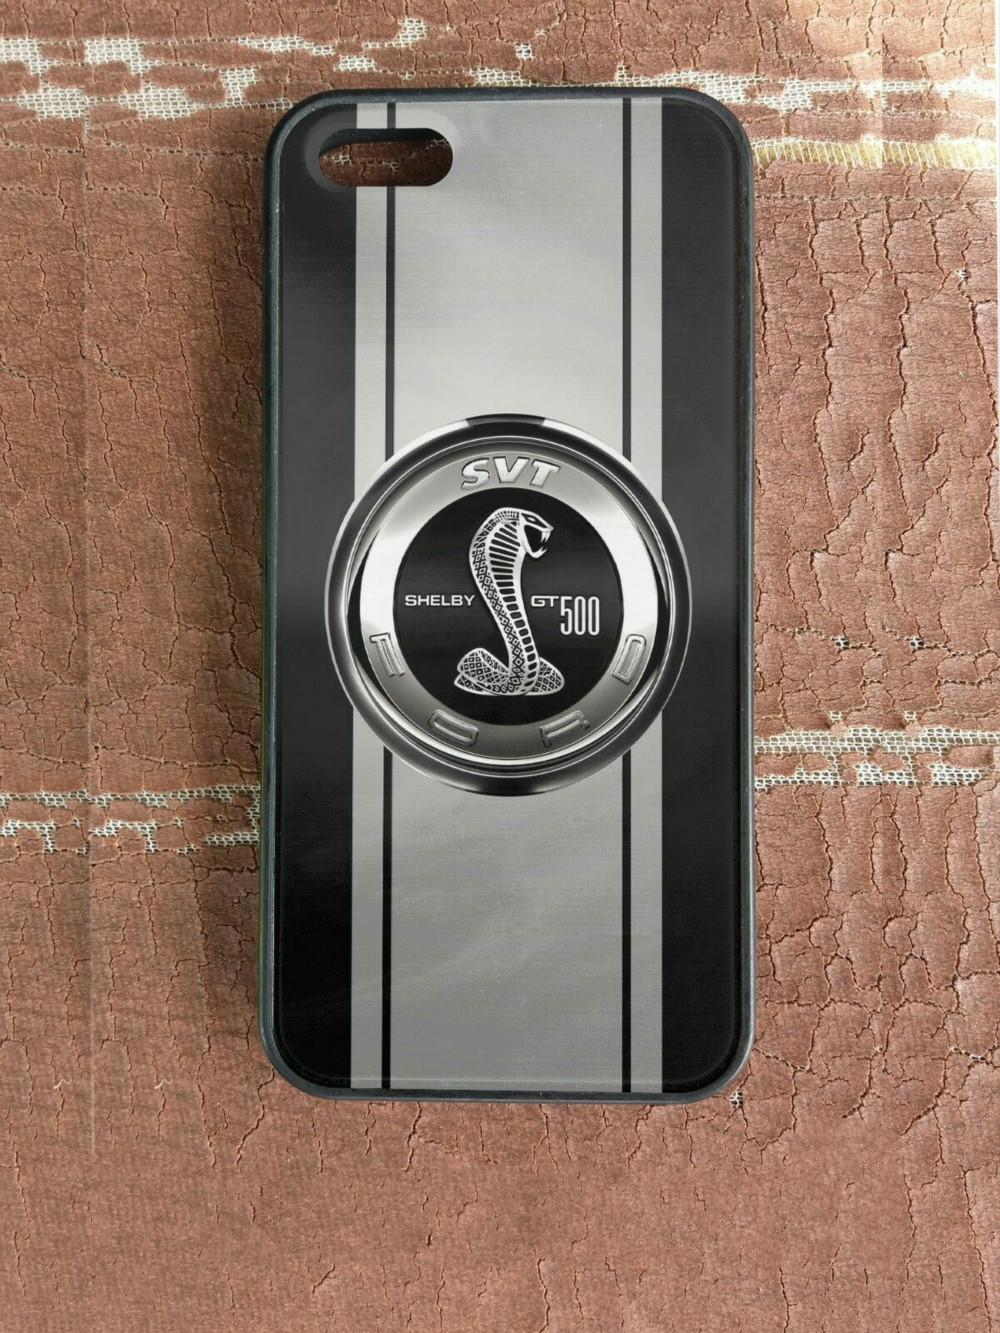 Get New Shelby Cobra GT500 Mustang Phone Case For Iphone 5s 6s 6plus 6splus  7 7plus 8 X Samsung Galaxy S6 S6ep S7 S7ep S8 S9